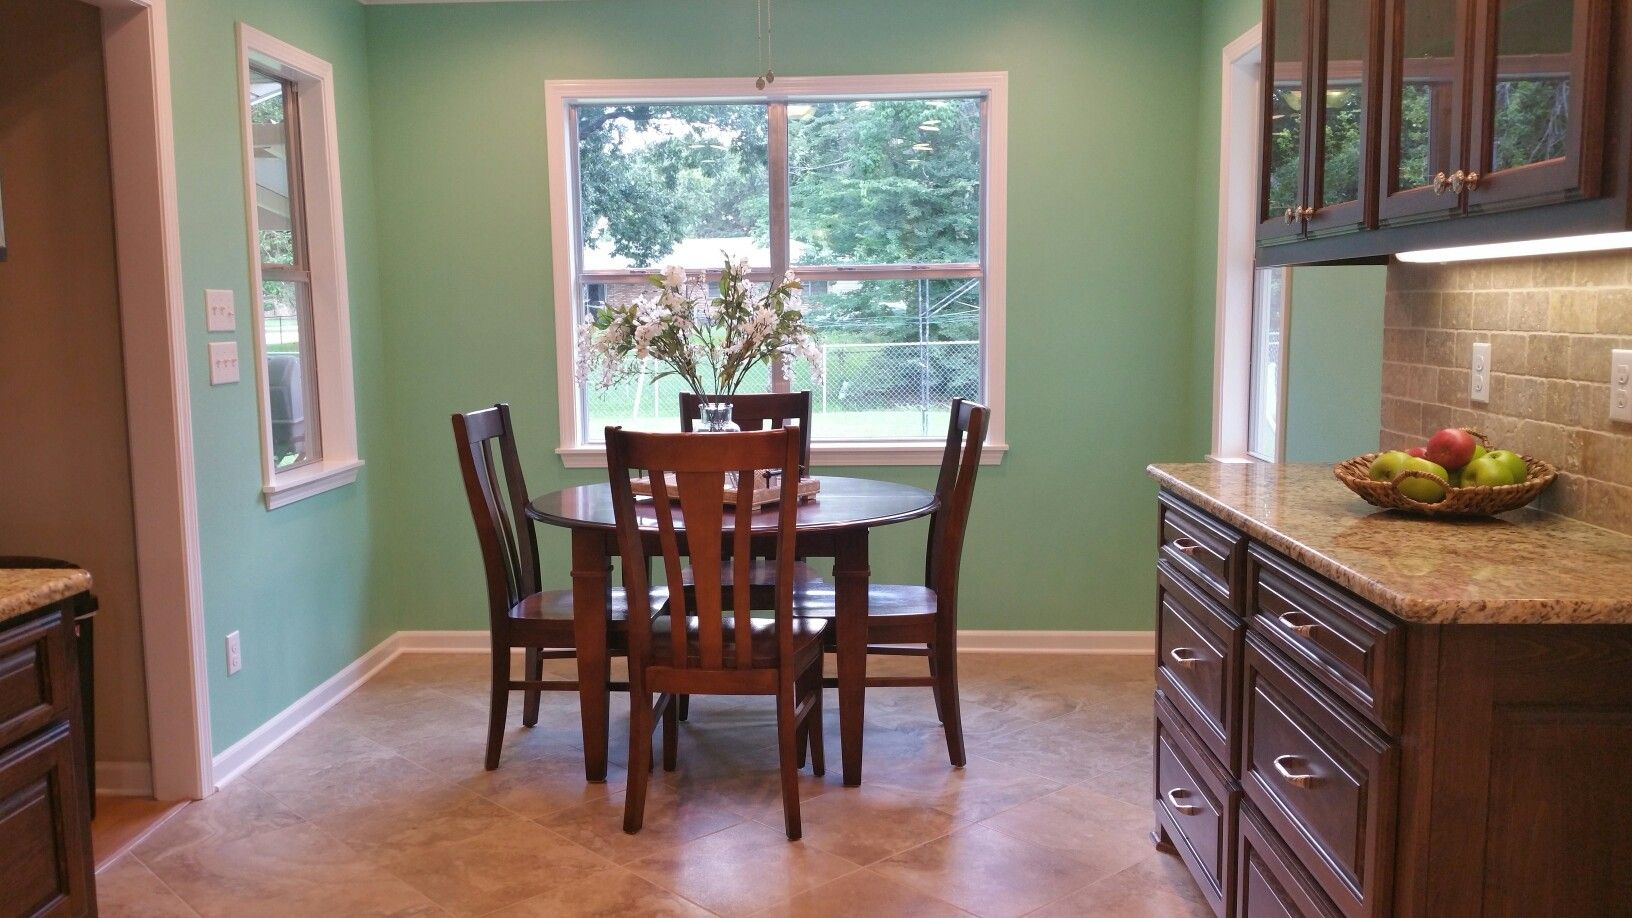 Kitchen remodel with sherwin williams retro mint wall for Retro kitchen paint colors